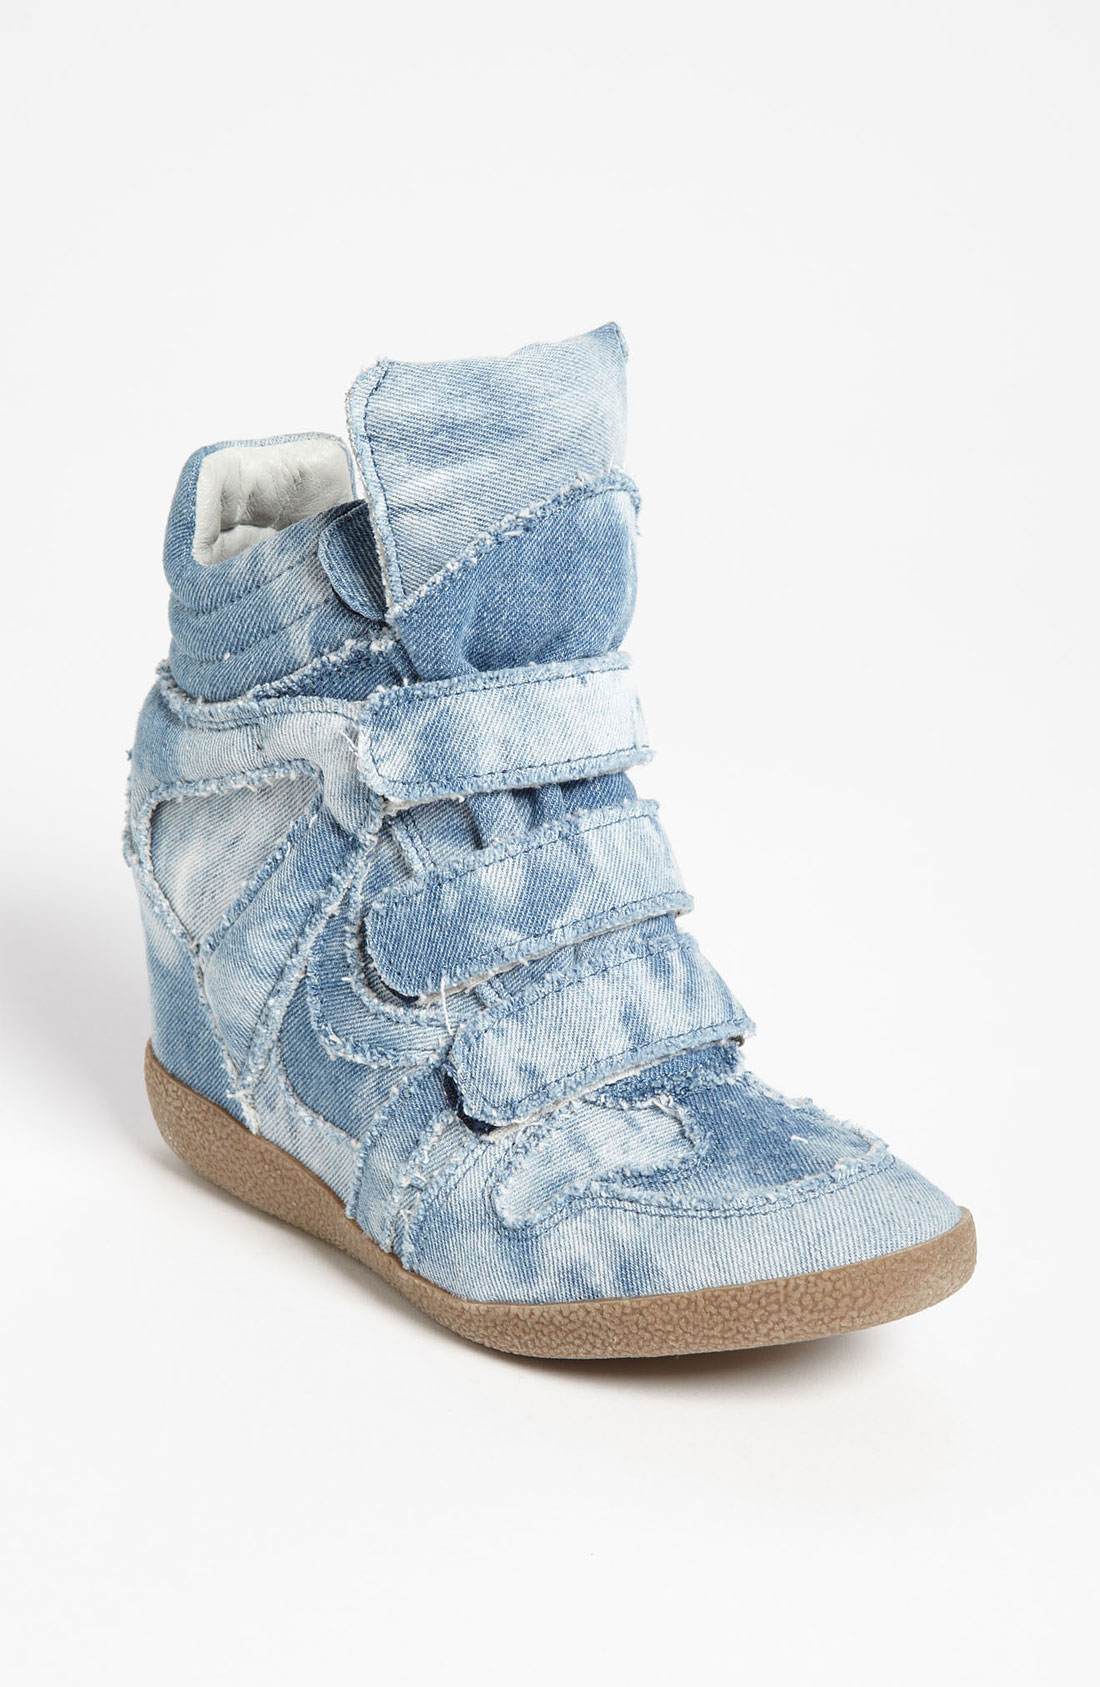 Steve Madden Hilitec Wedge Sneaker in Blue (denim) | Lyst